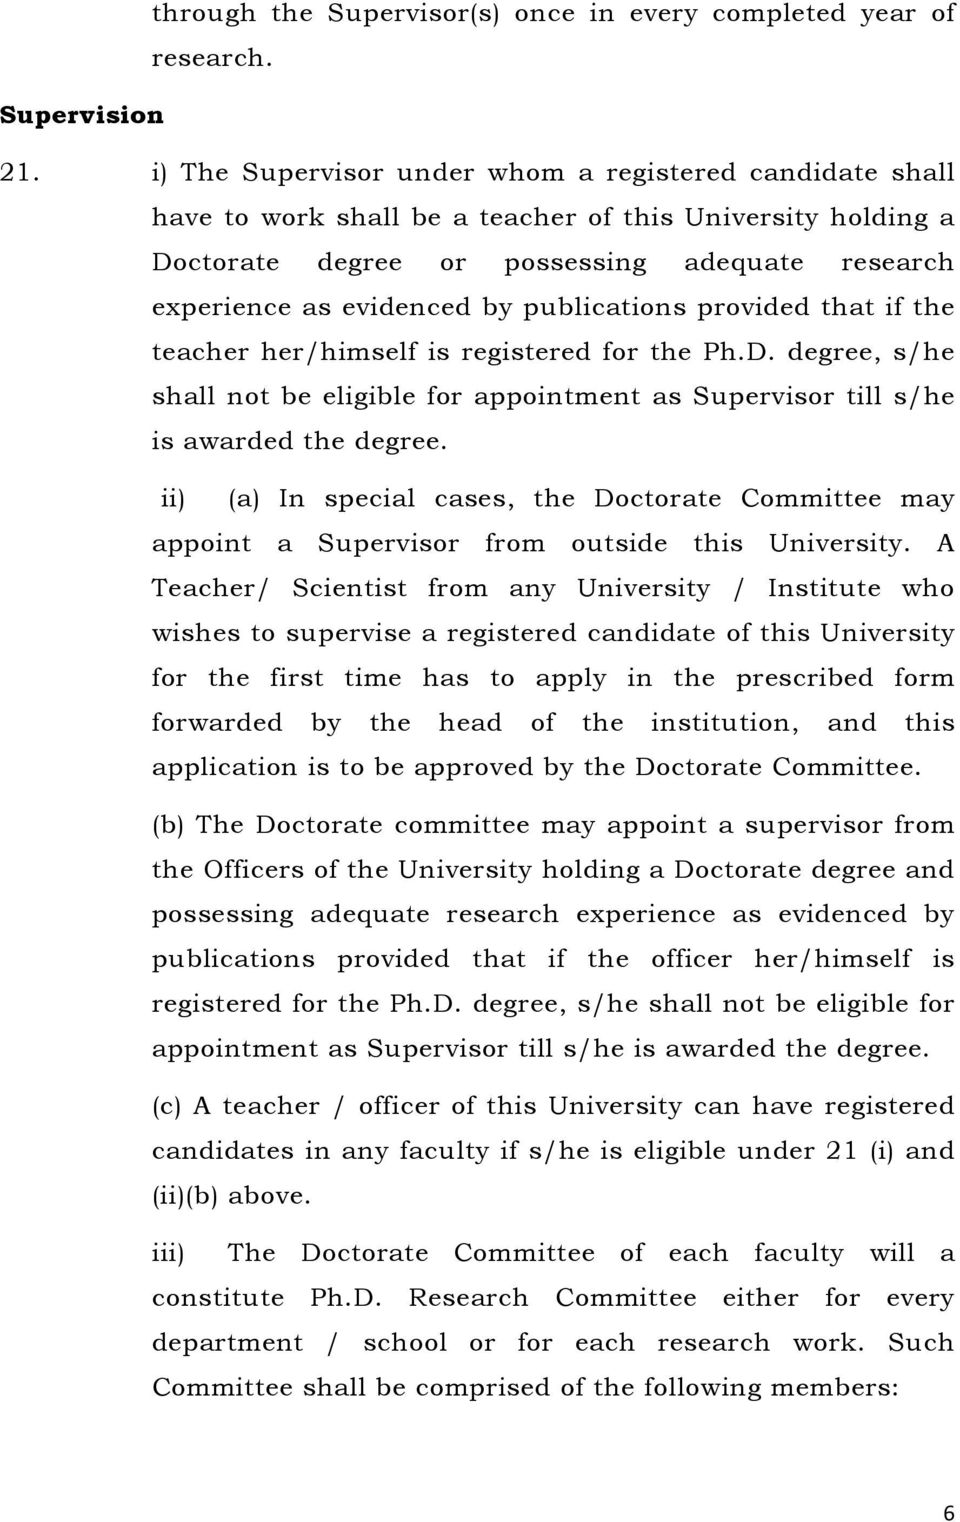 publications provided that if the teacher her/himself is registered for the Ph.D. degree, s/he shall not be eligible for appointment as Supervisor till s/he is awarded the degree.